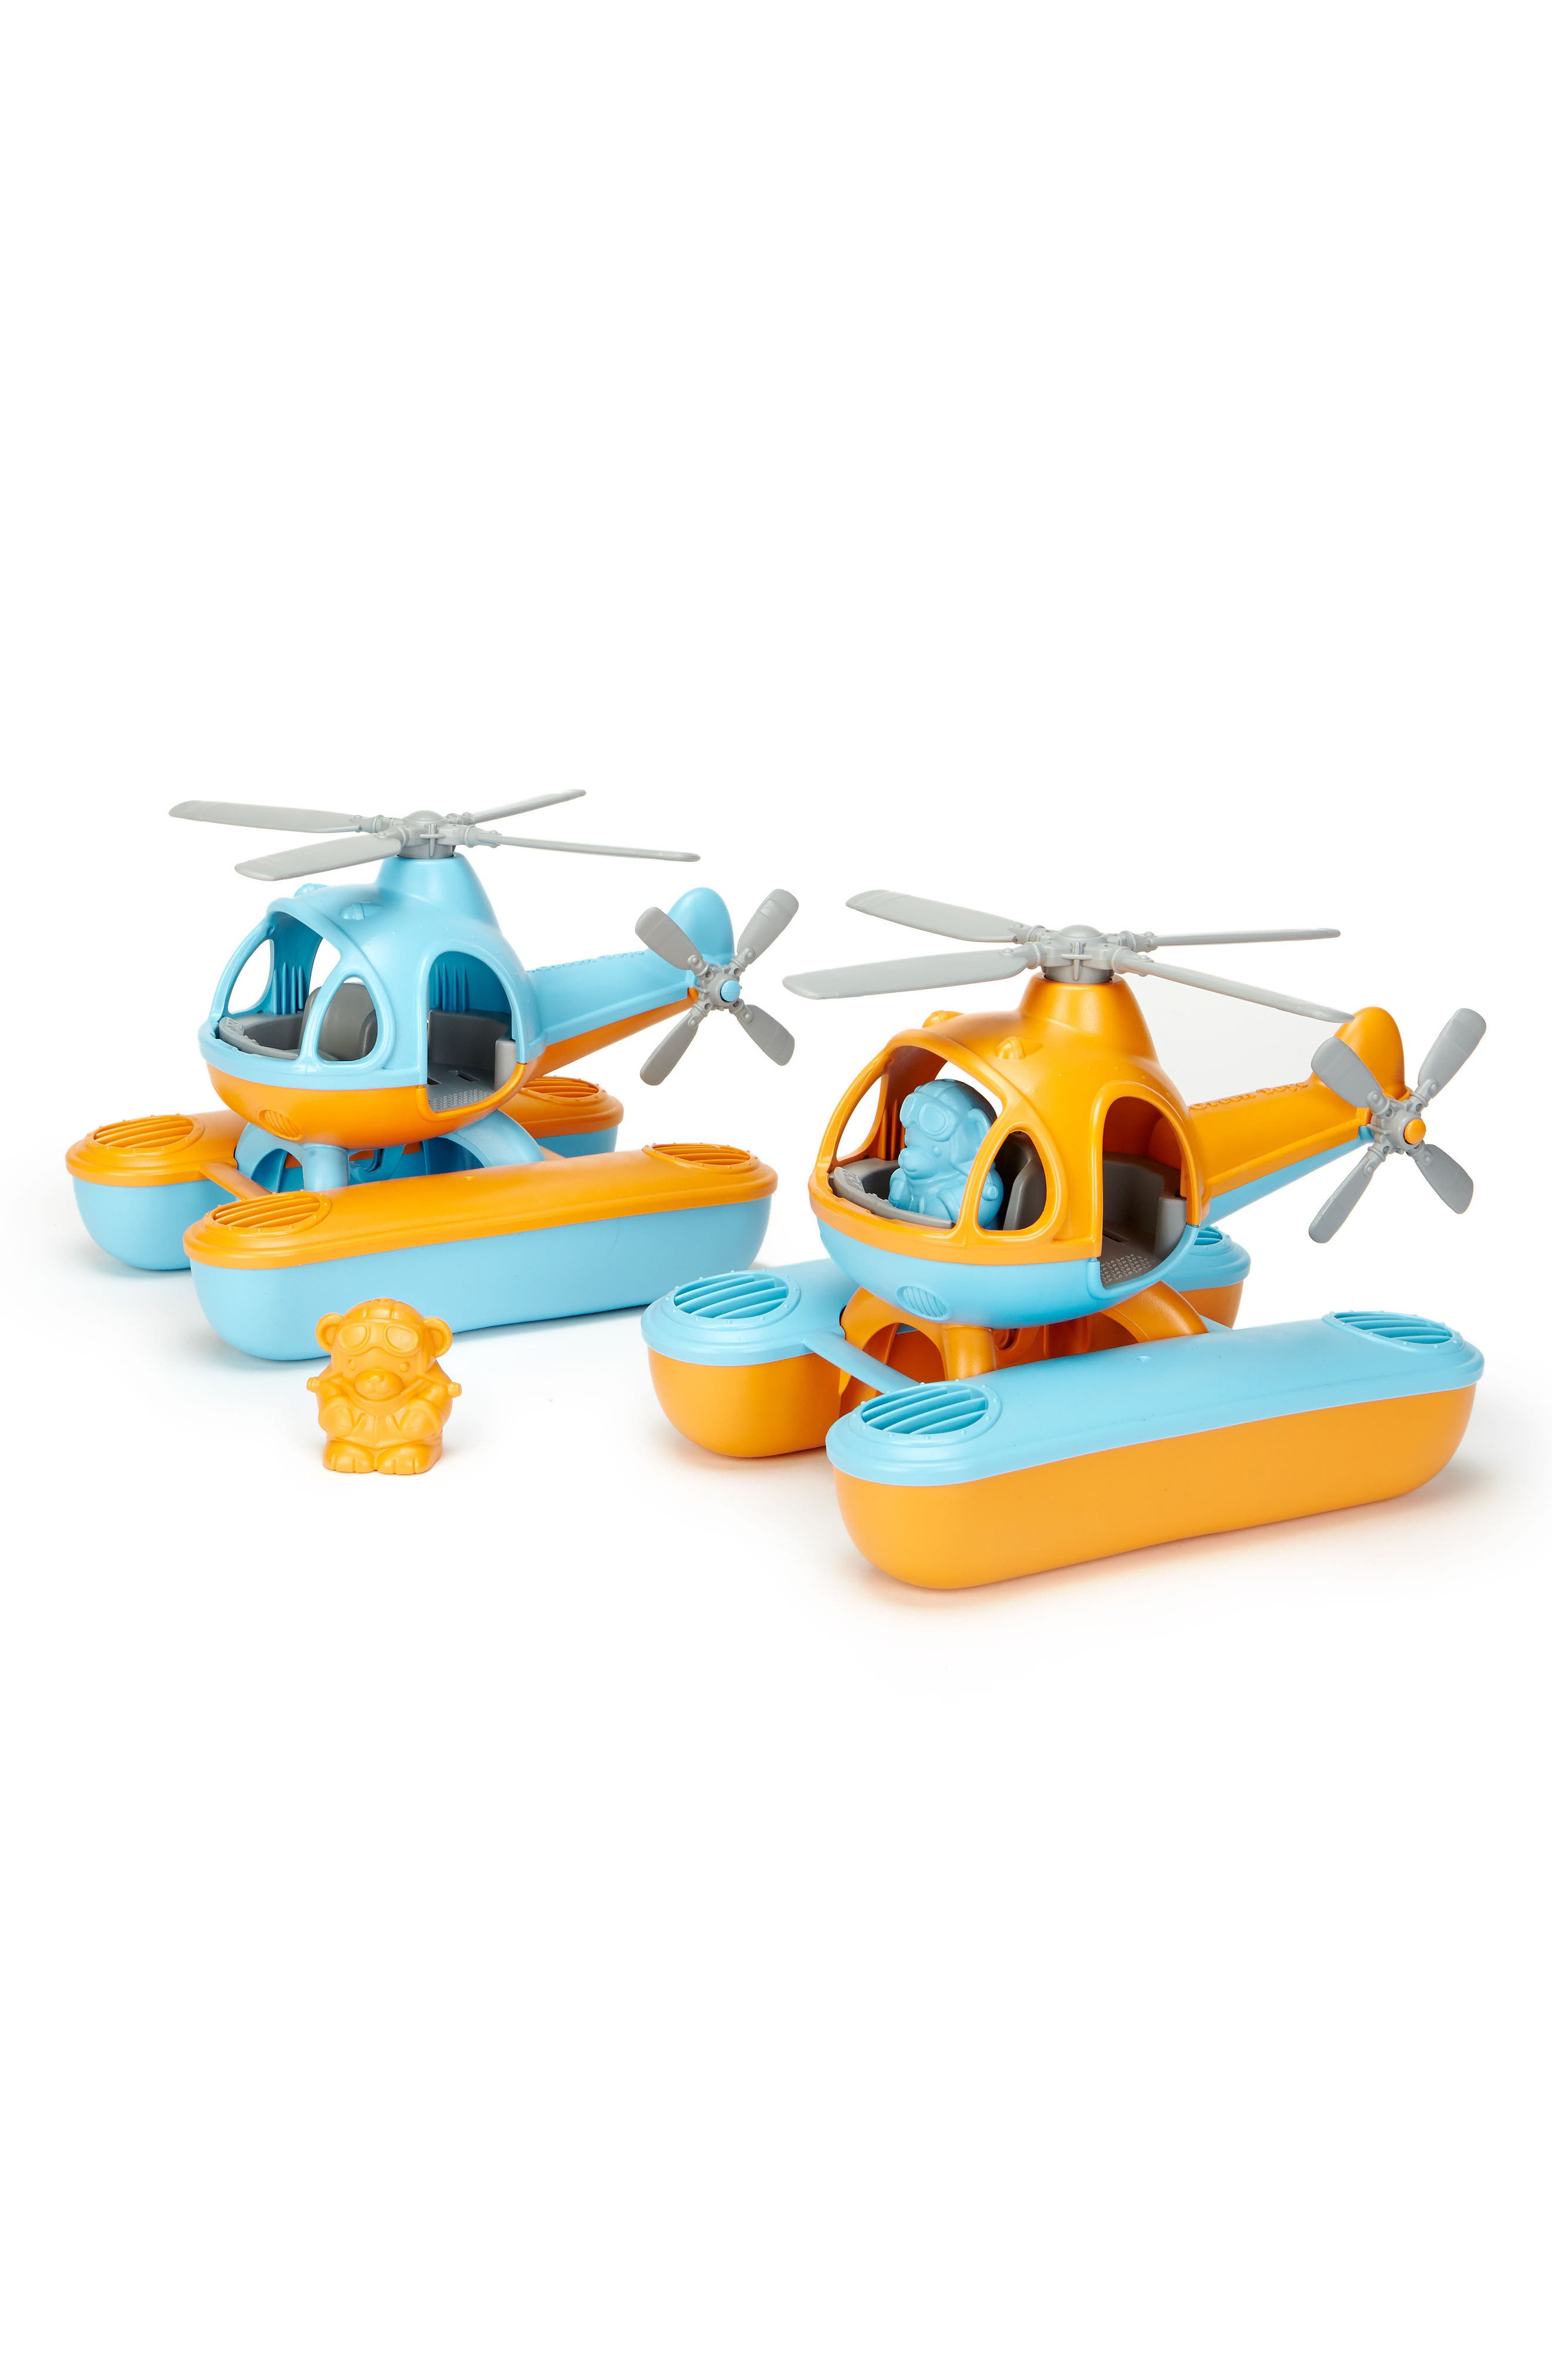 Two-Piece Seacopter Toy,                             Alternate thumbnail 2, color,                             Orange